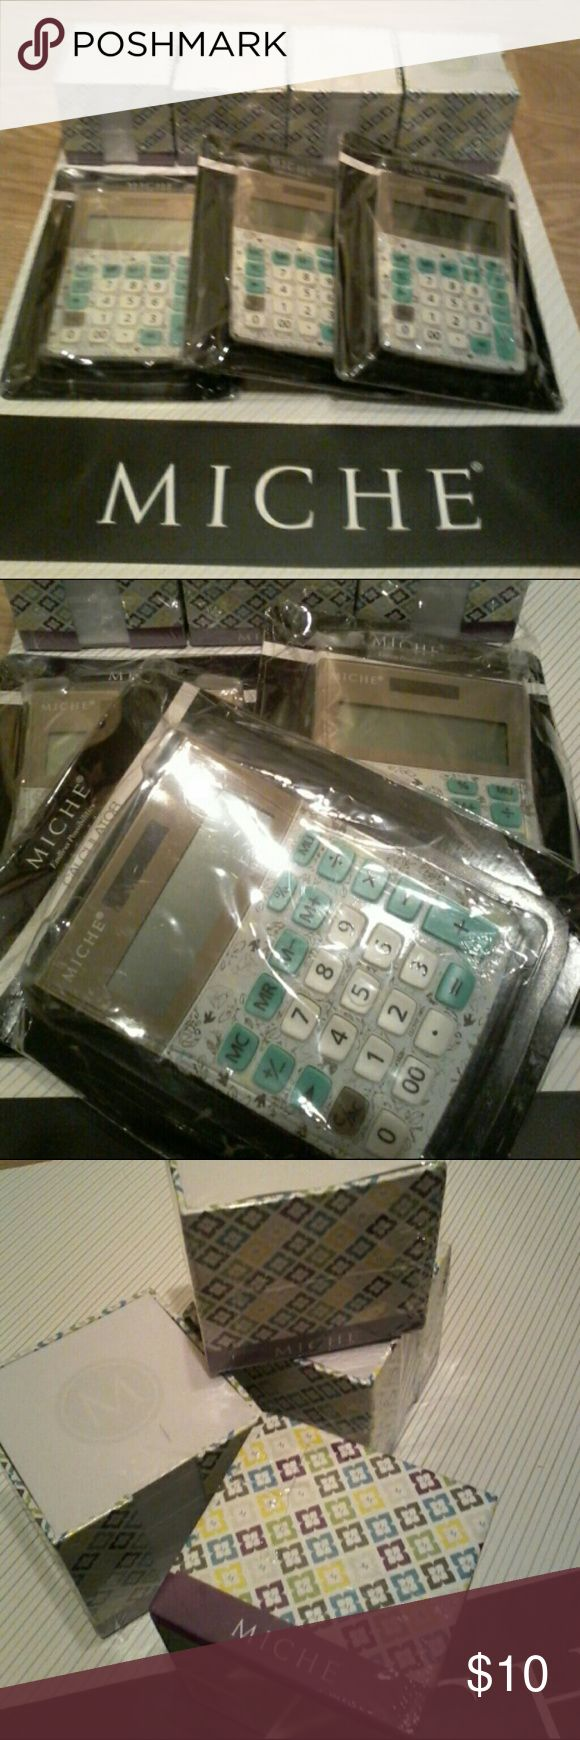 "NEW Miche Calculator & Note Cube HTF You are purchasing 1 set: 1 calculator & 1 note cube.  Several available.  Calculator measures 4.5"" wide x 6"" tall & features dove hope pattern   Great Gift idea! All items are new in original packaging.  SMOKE FREE HOME   Thanks for looking :) Miche Accessories"